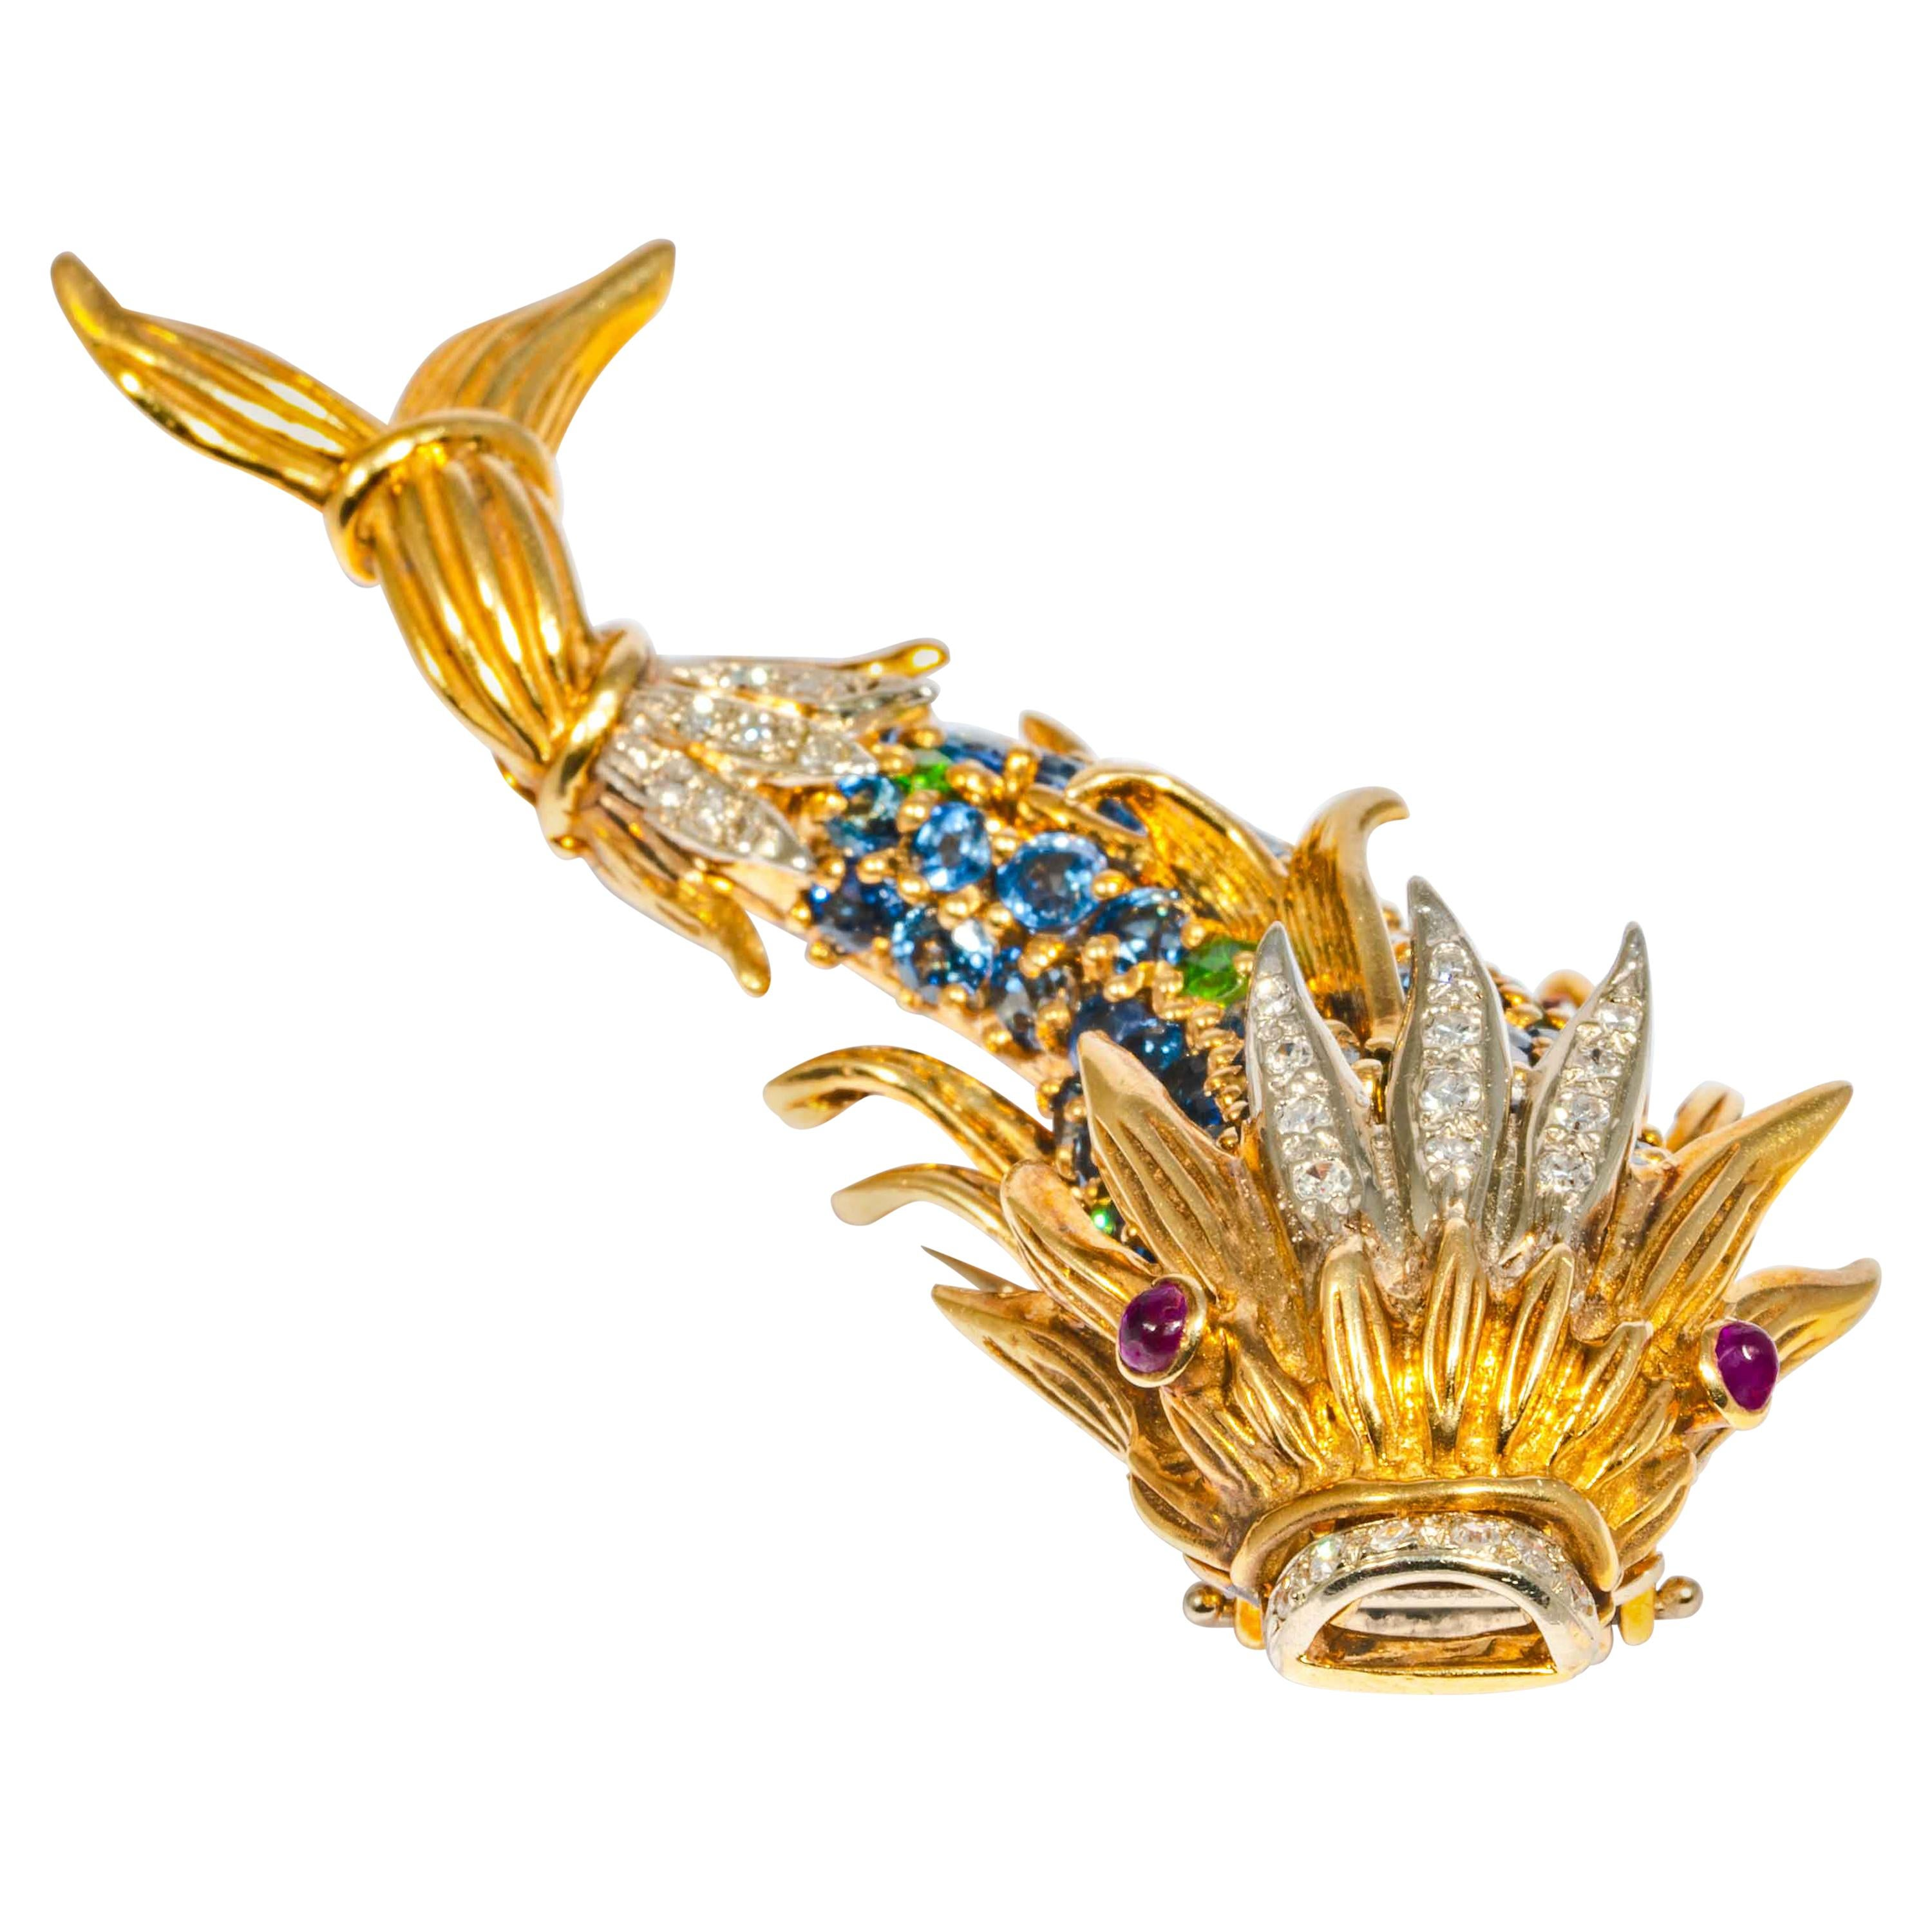 Sapphire and Diamond Fish Clip Brooch by Jean Schlumberger, Tiffany & Co.